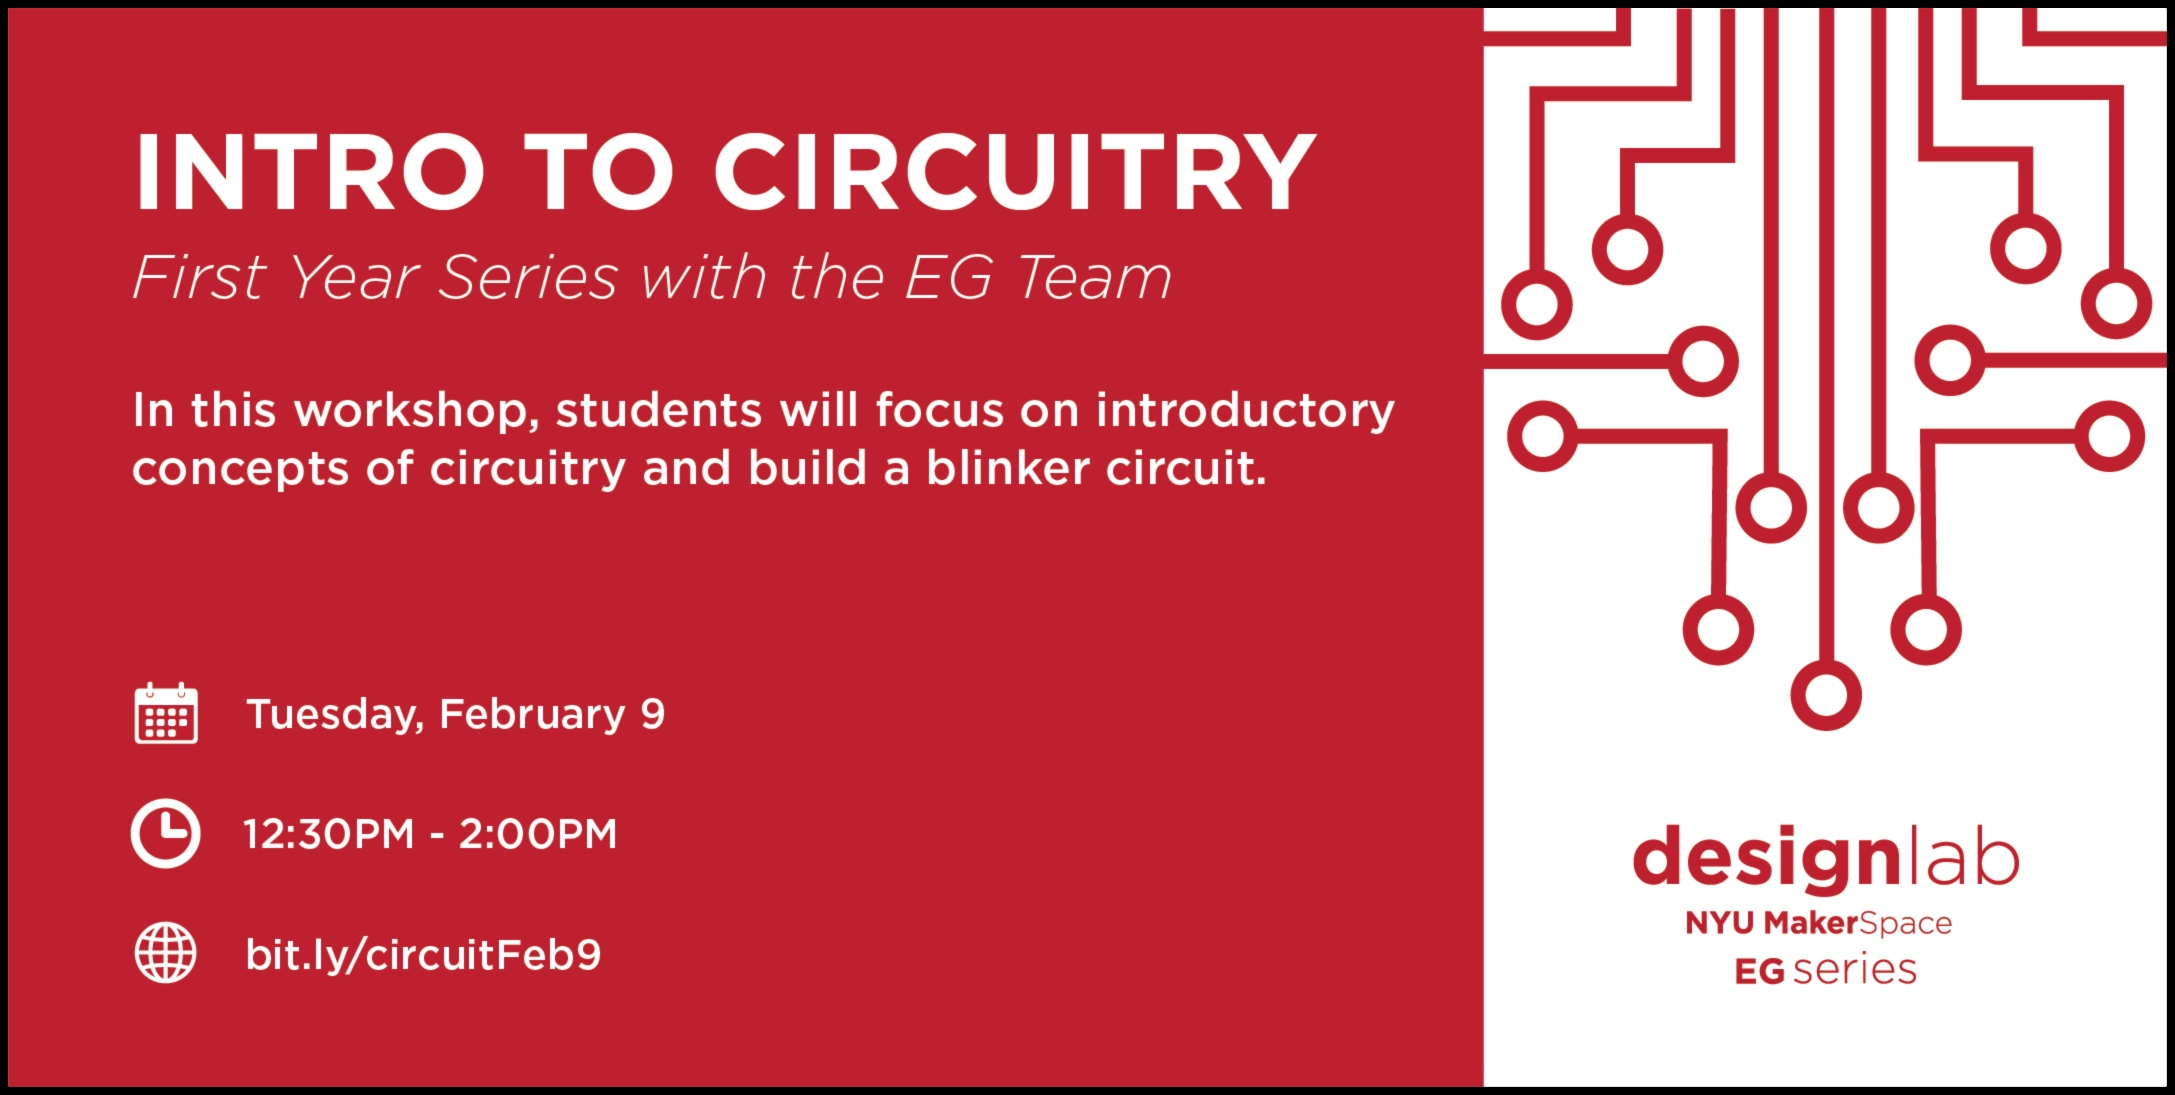 intro to circuitry - flyer